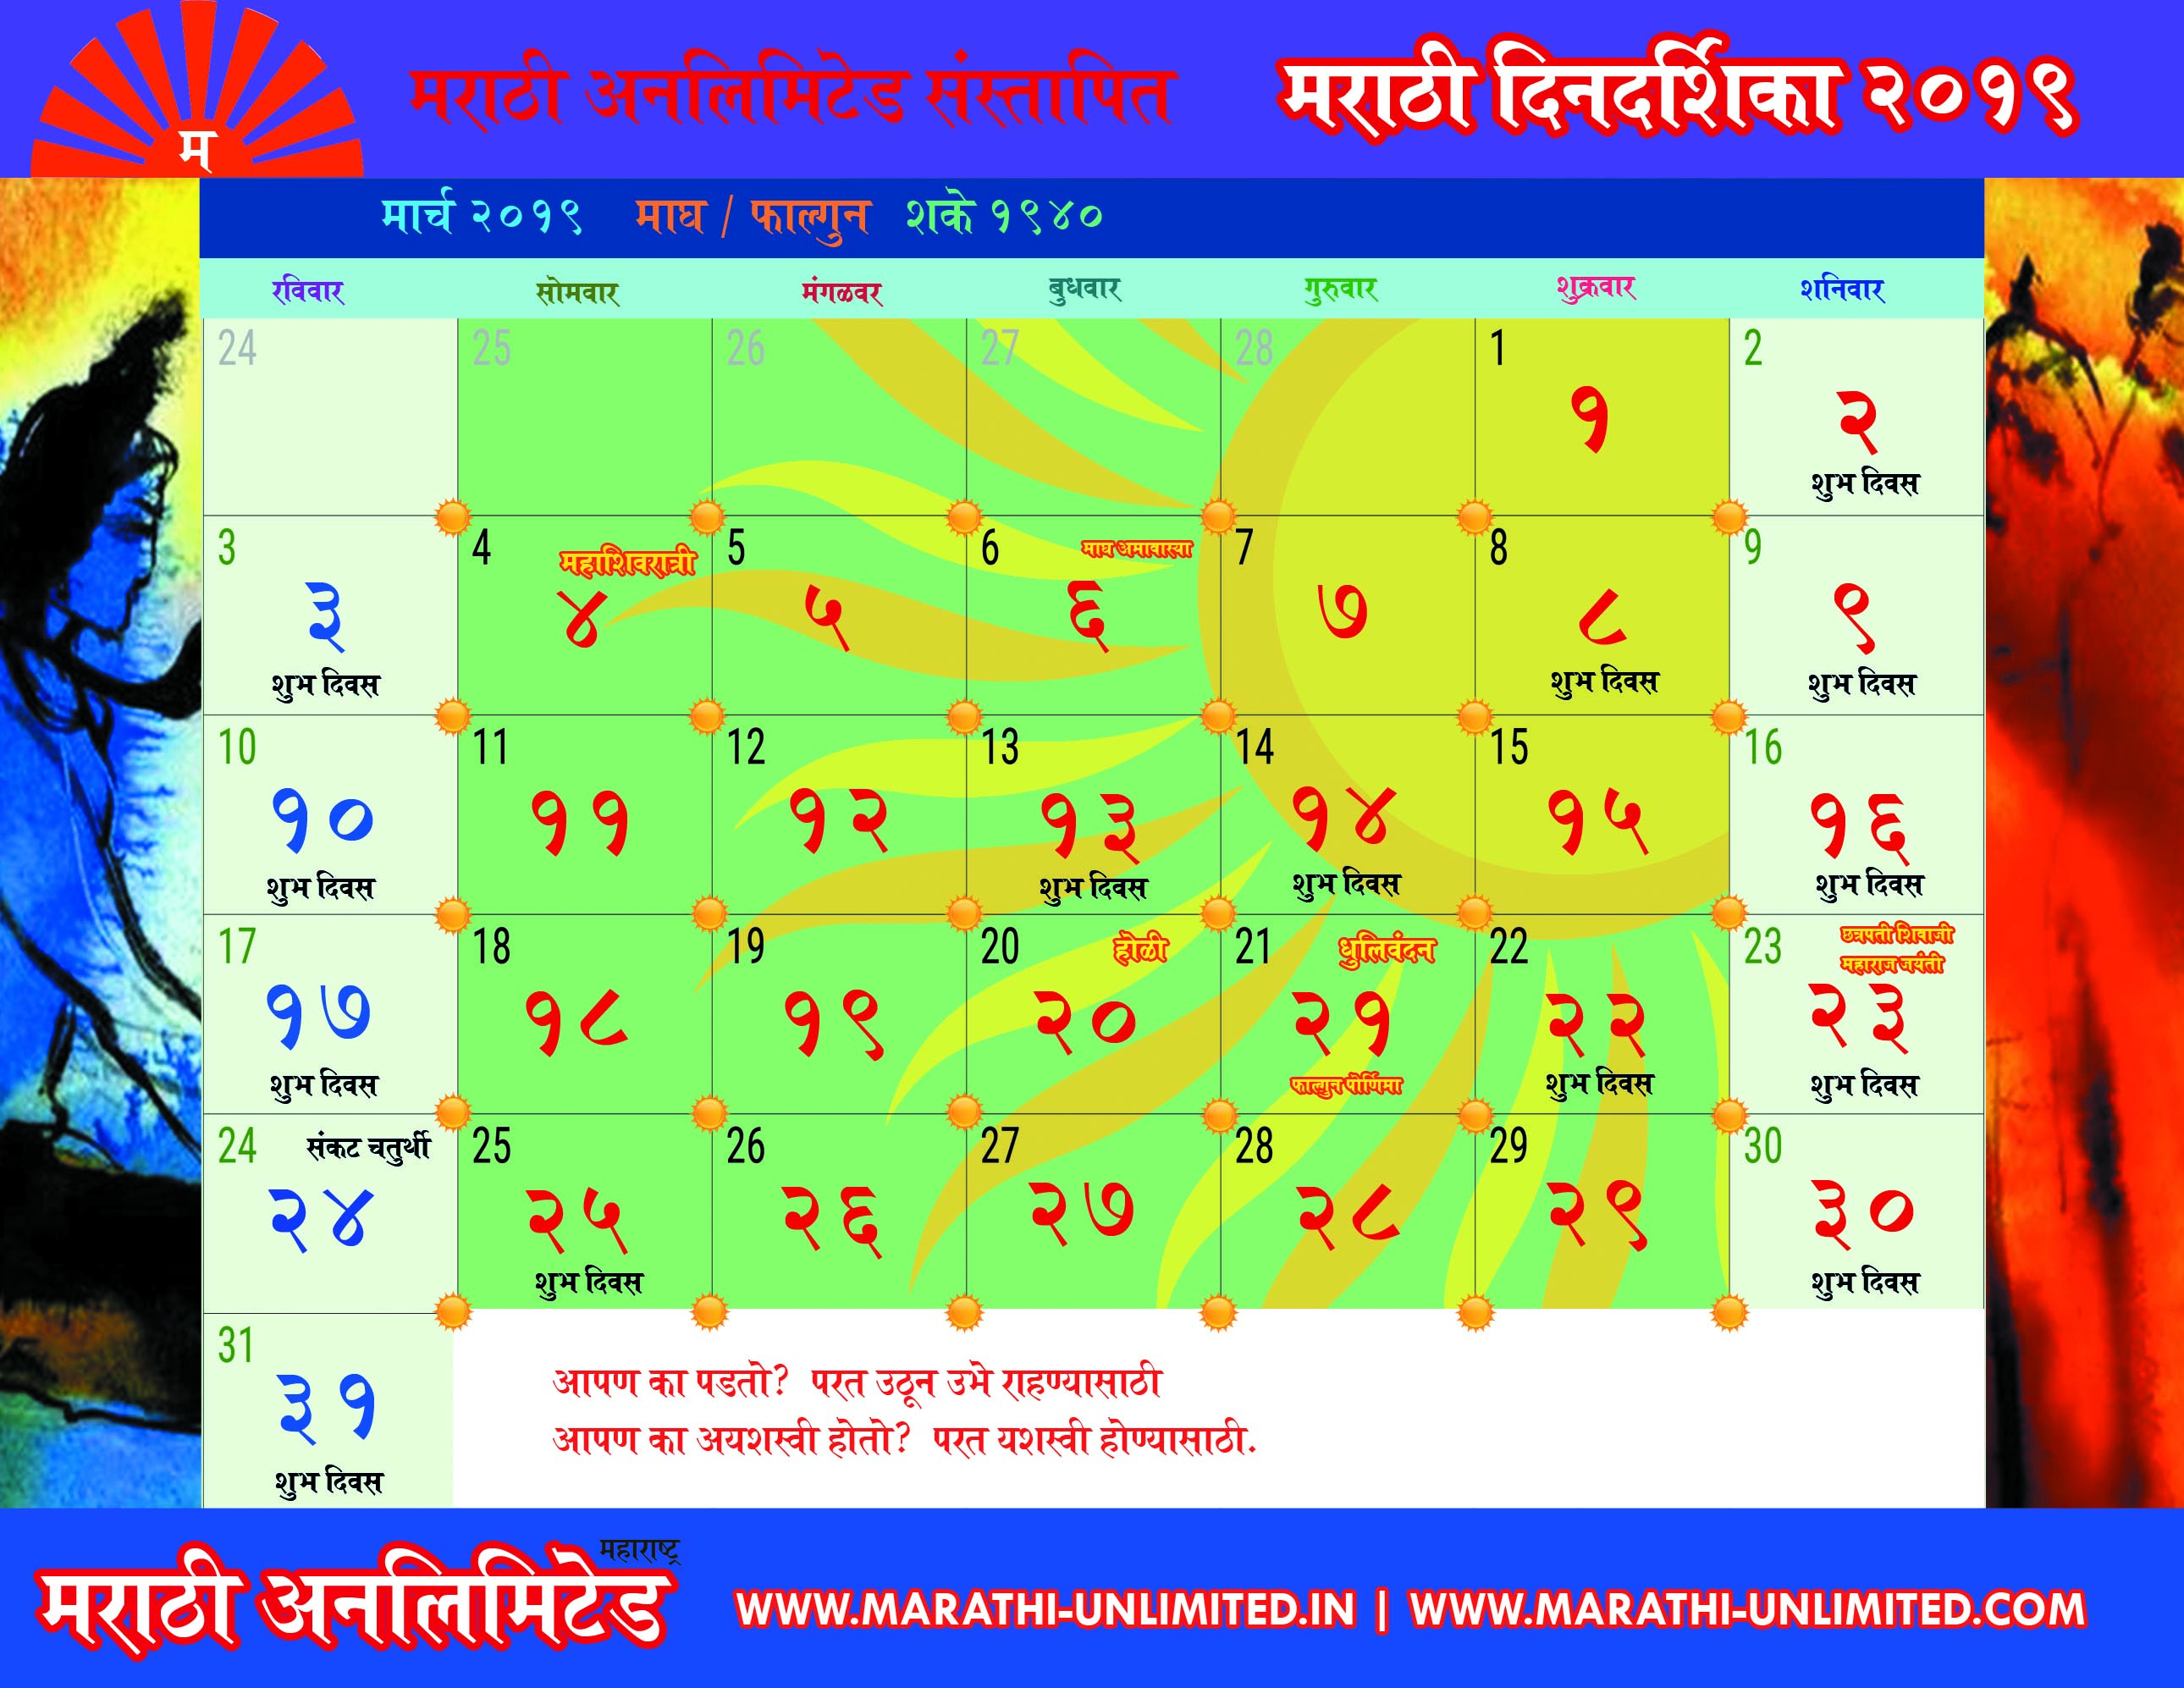 March 2019 Marathi Calendar Download Free Pdf | Marathi